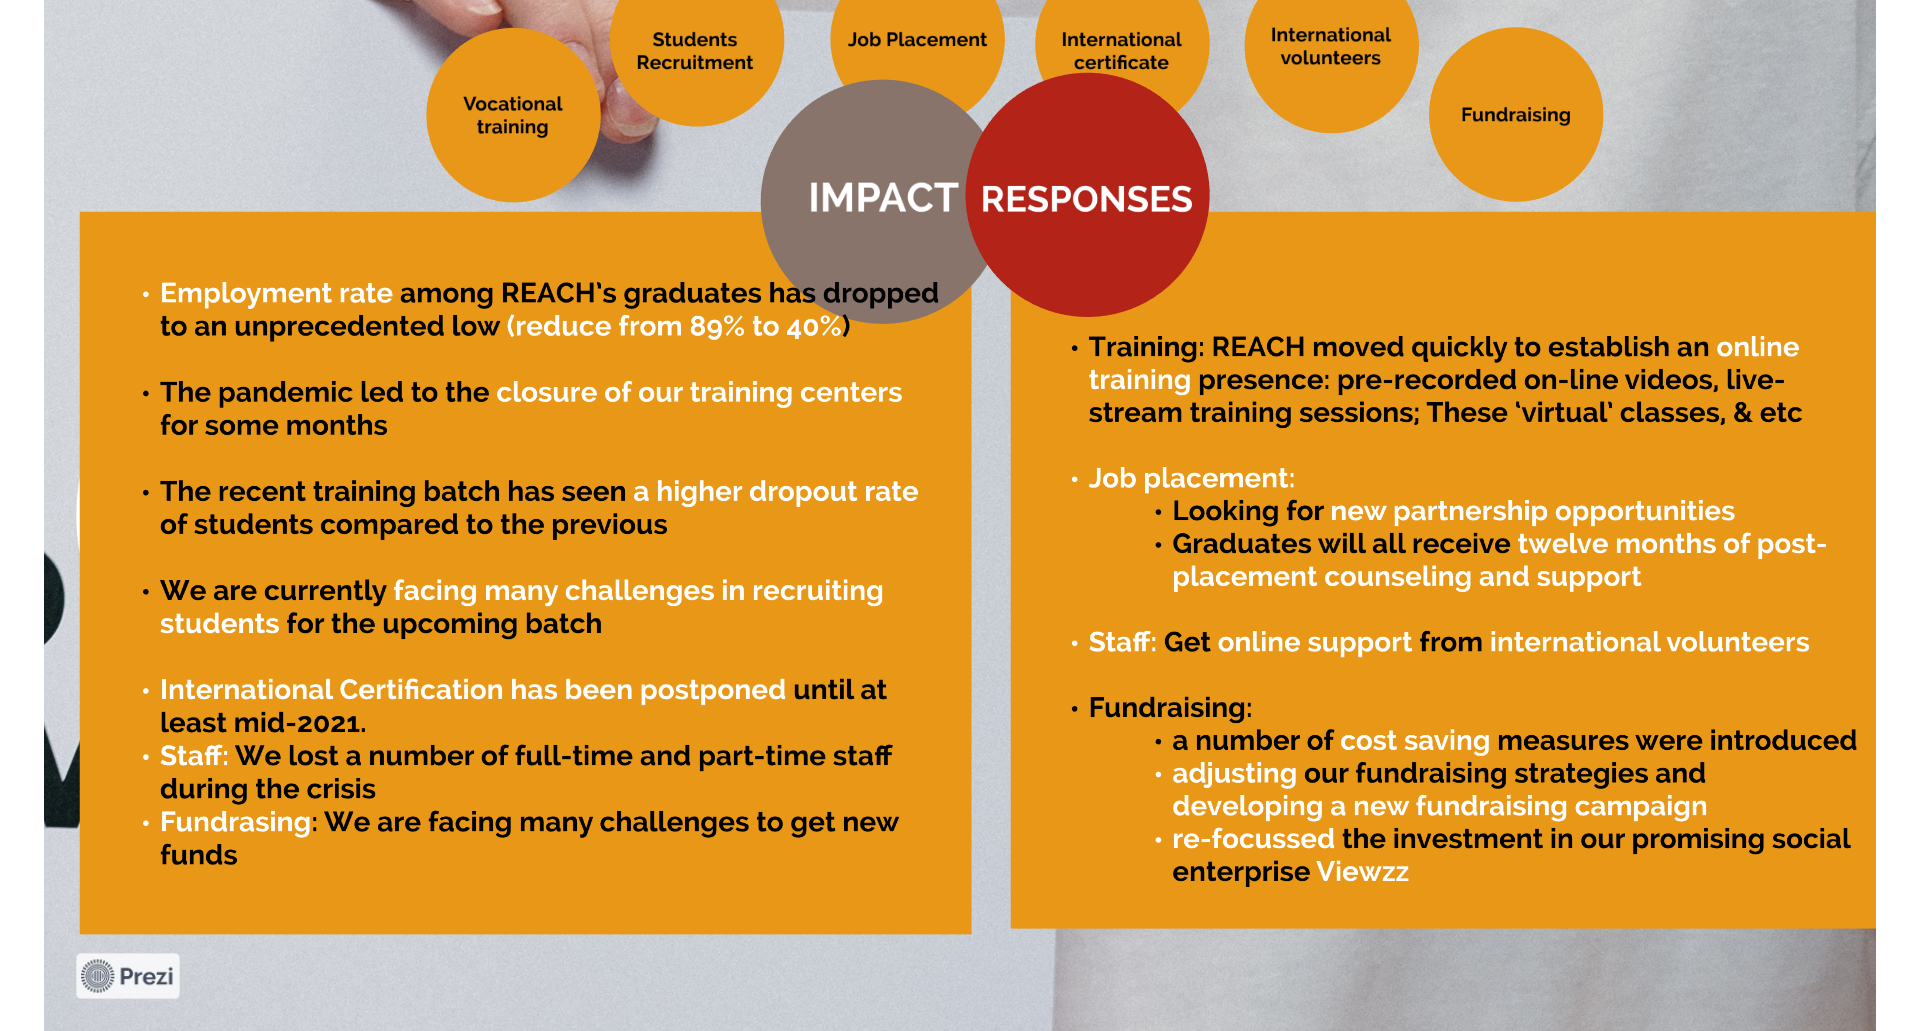 Impact of COVID on REACH and how REACH responds to COVID